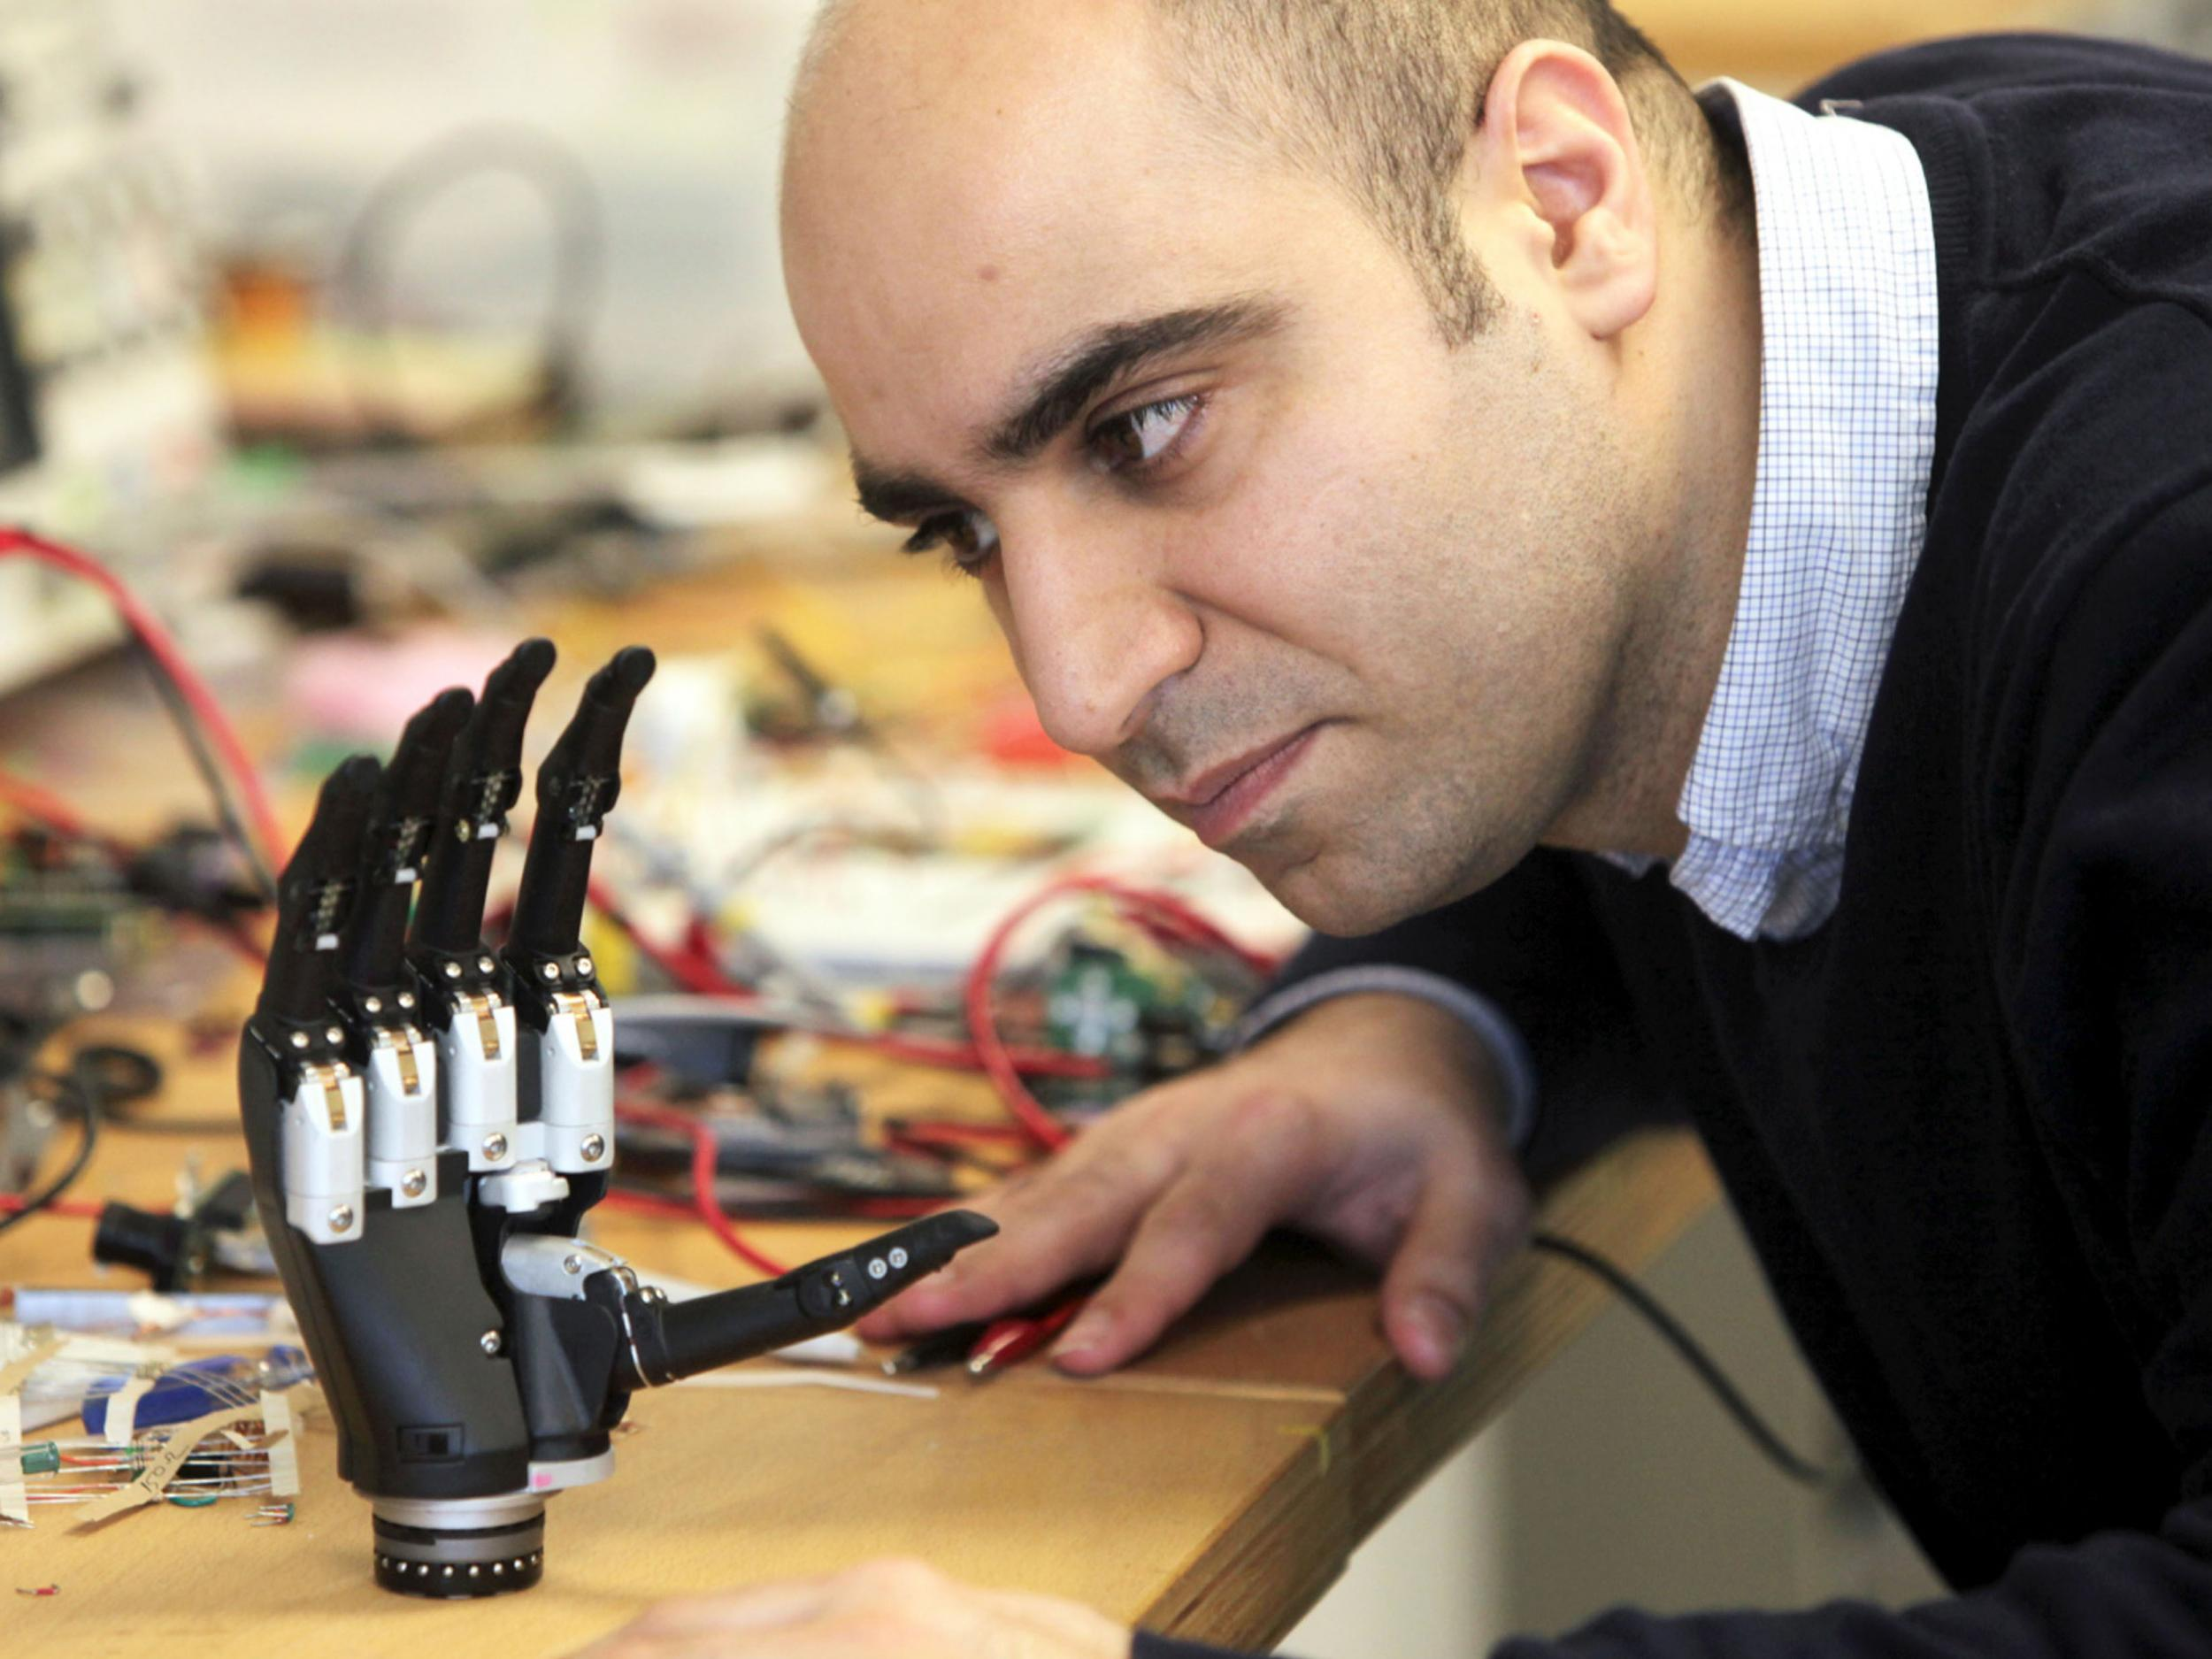 Scientists Unveil Revolutionary Bionic Hand That Sees Objects And Triggers Grip Within Milliseconds The Independent Independent